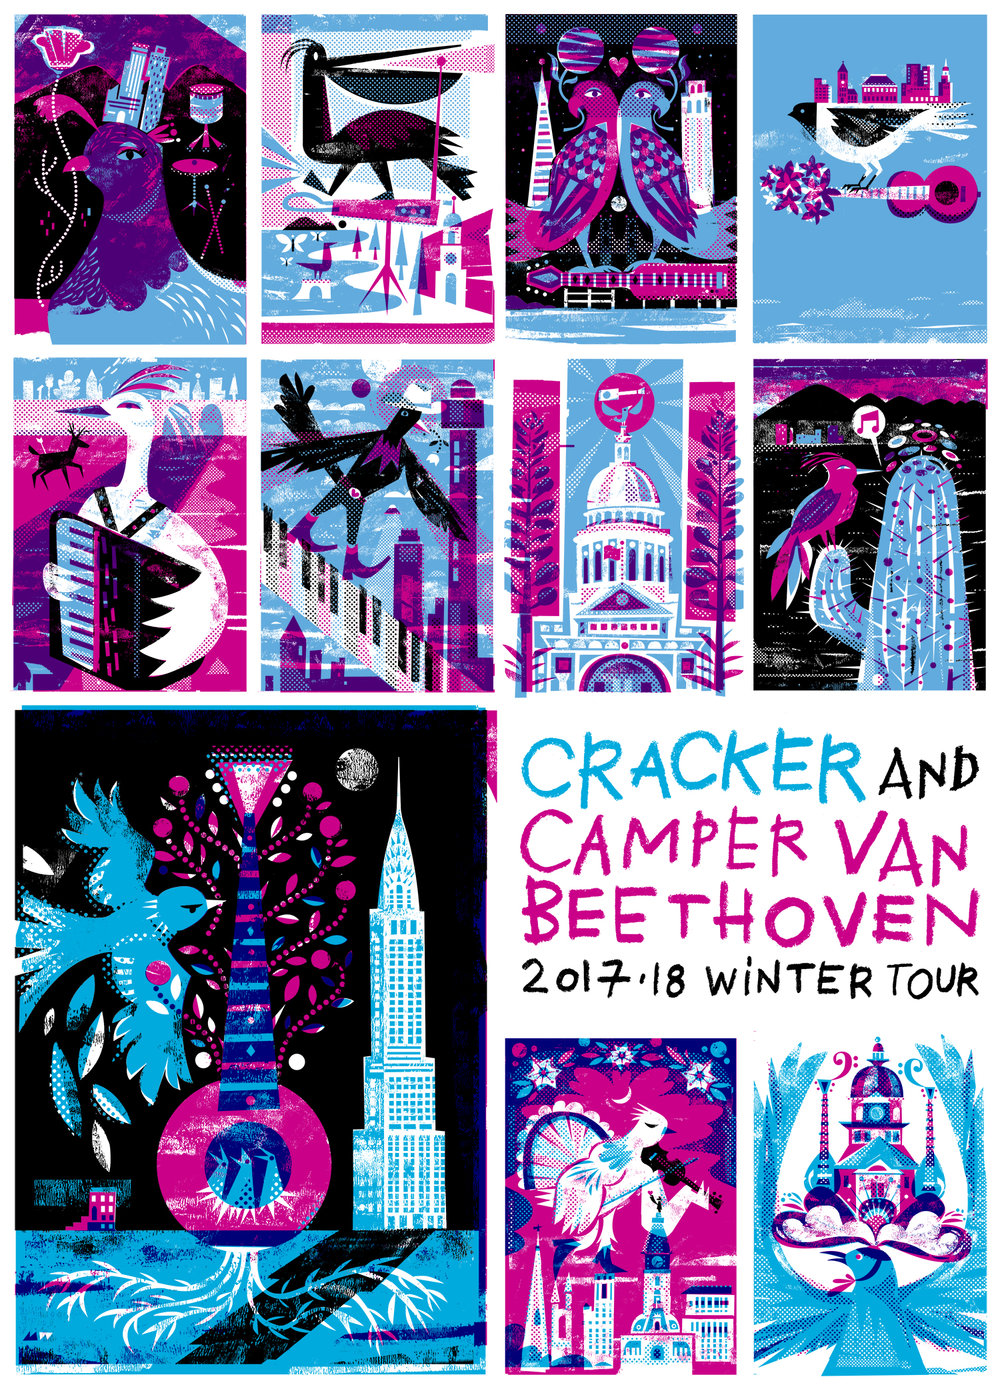 Cracker and Camper Van Beethoven: Winter Tour 2017